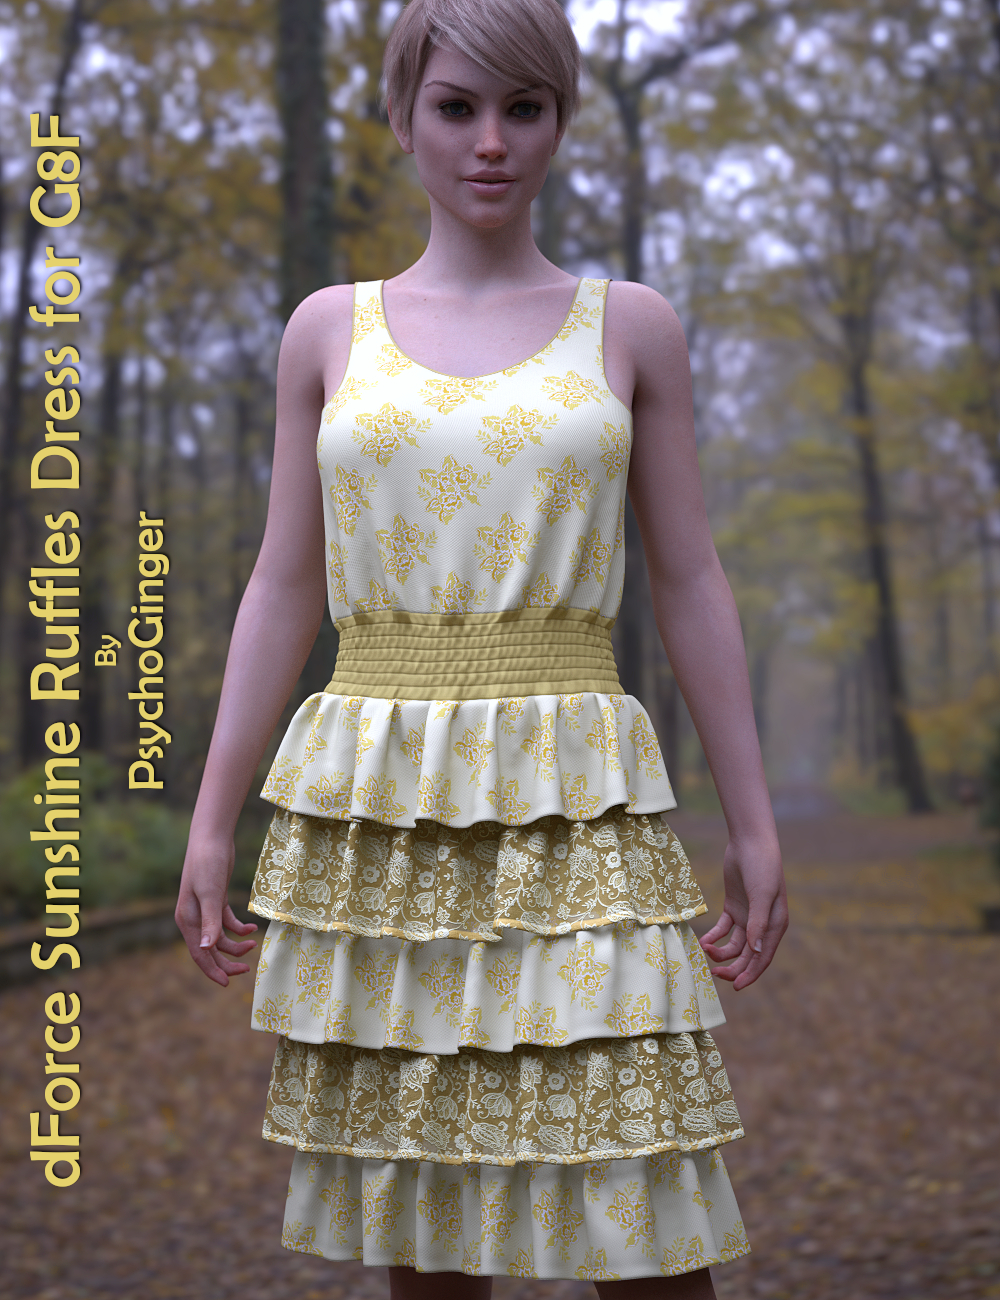 dForce Sunshine Ruffles Dress for G8F by PsychoGinger